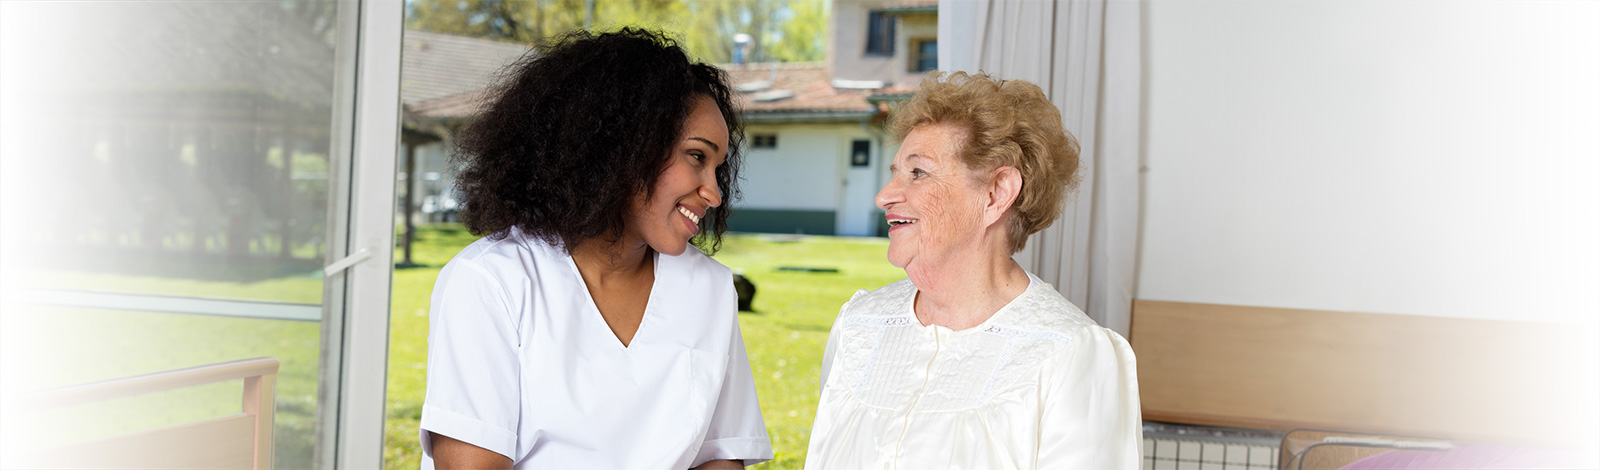 A nurse and a resident smiling together on a bed.